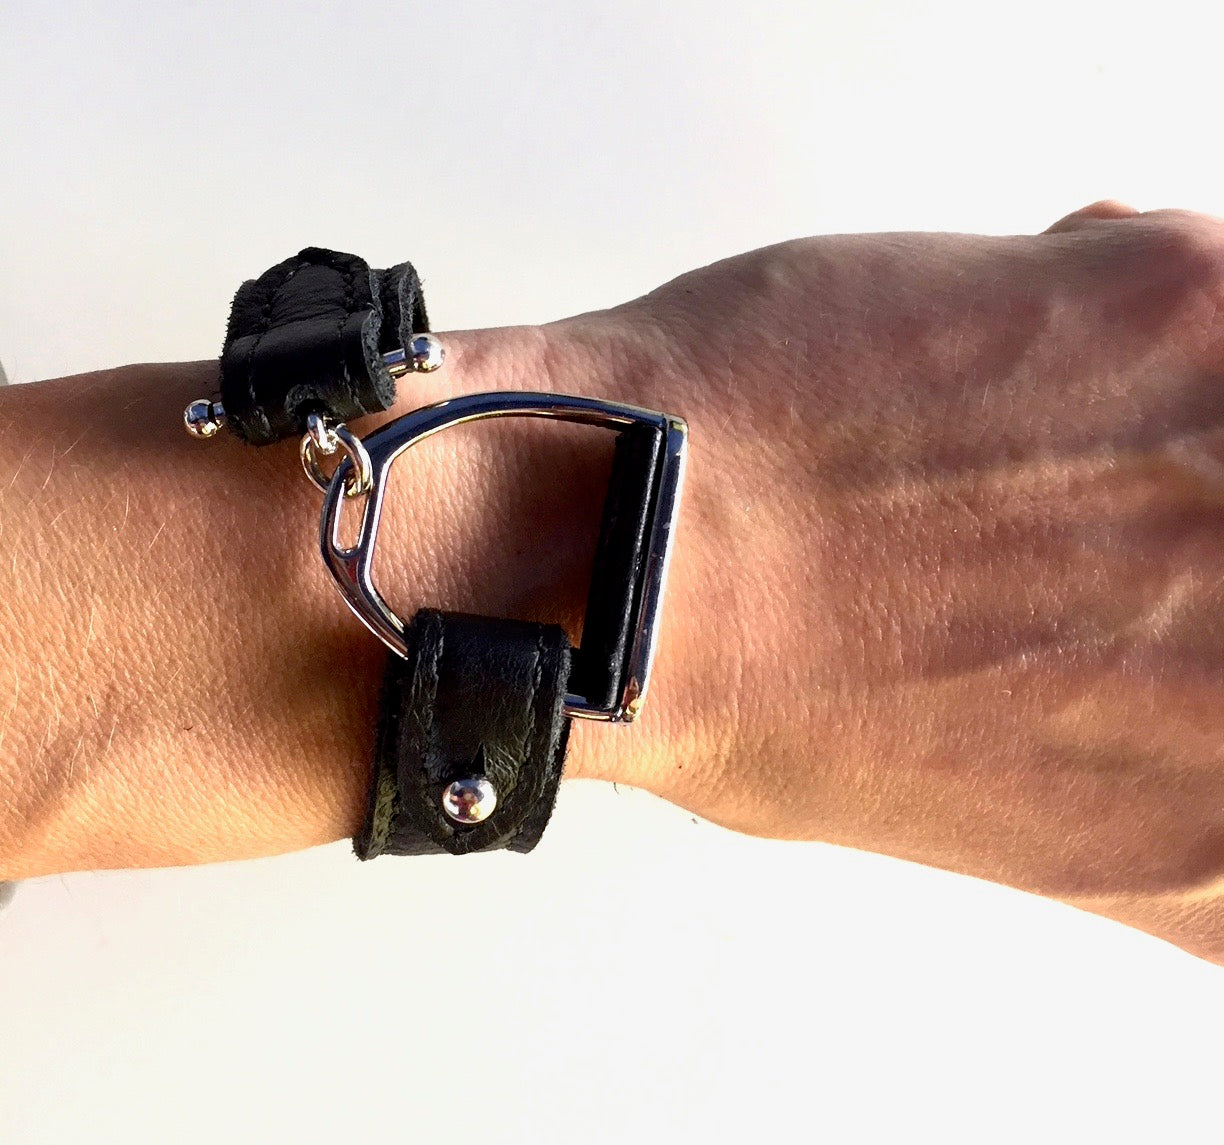 APOLLO  | BLACK | Equestrian leather bracelet | Leather Wrap | Stirrup Leather Cuff - AtelierCG™